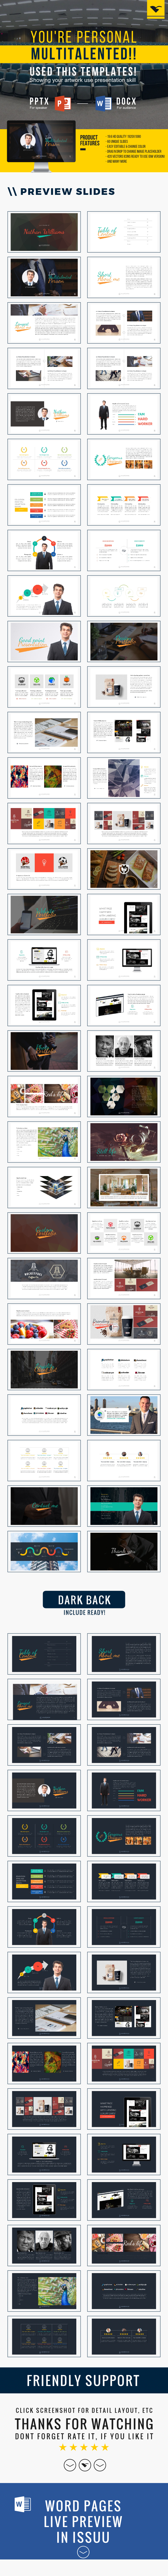 Multitalent personal portfolio powerpoint template on behance and print template is the ultimate portfolio presentation powerpoint template lets prepare your self and portfolio for next new year 2016 toneelgroepblik Gallery